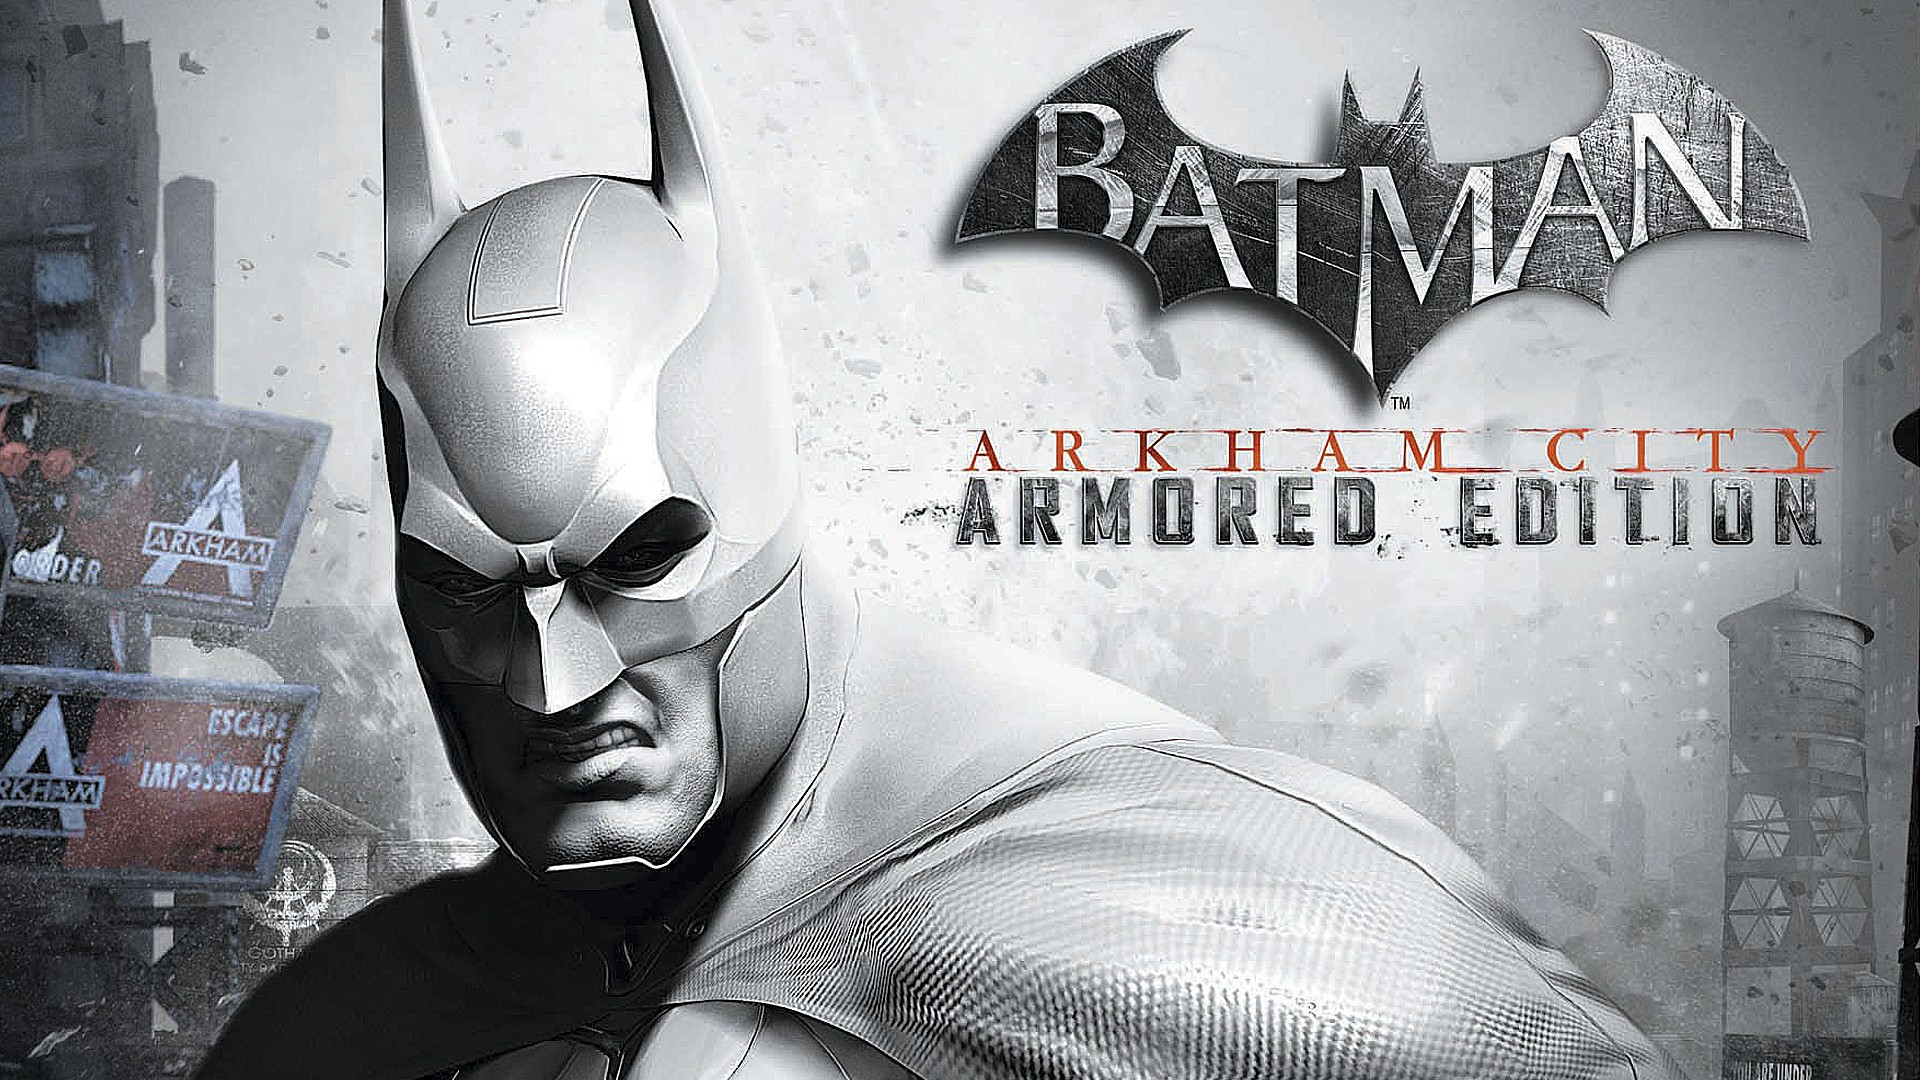 Wallpaper Full Hd 1080p 3d Batman Arkham City Armored Edition Wallpapers Hd